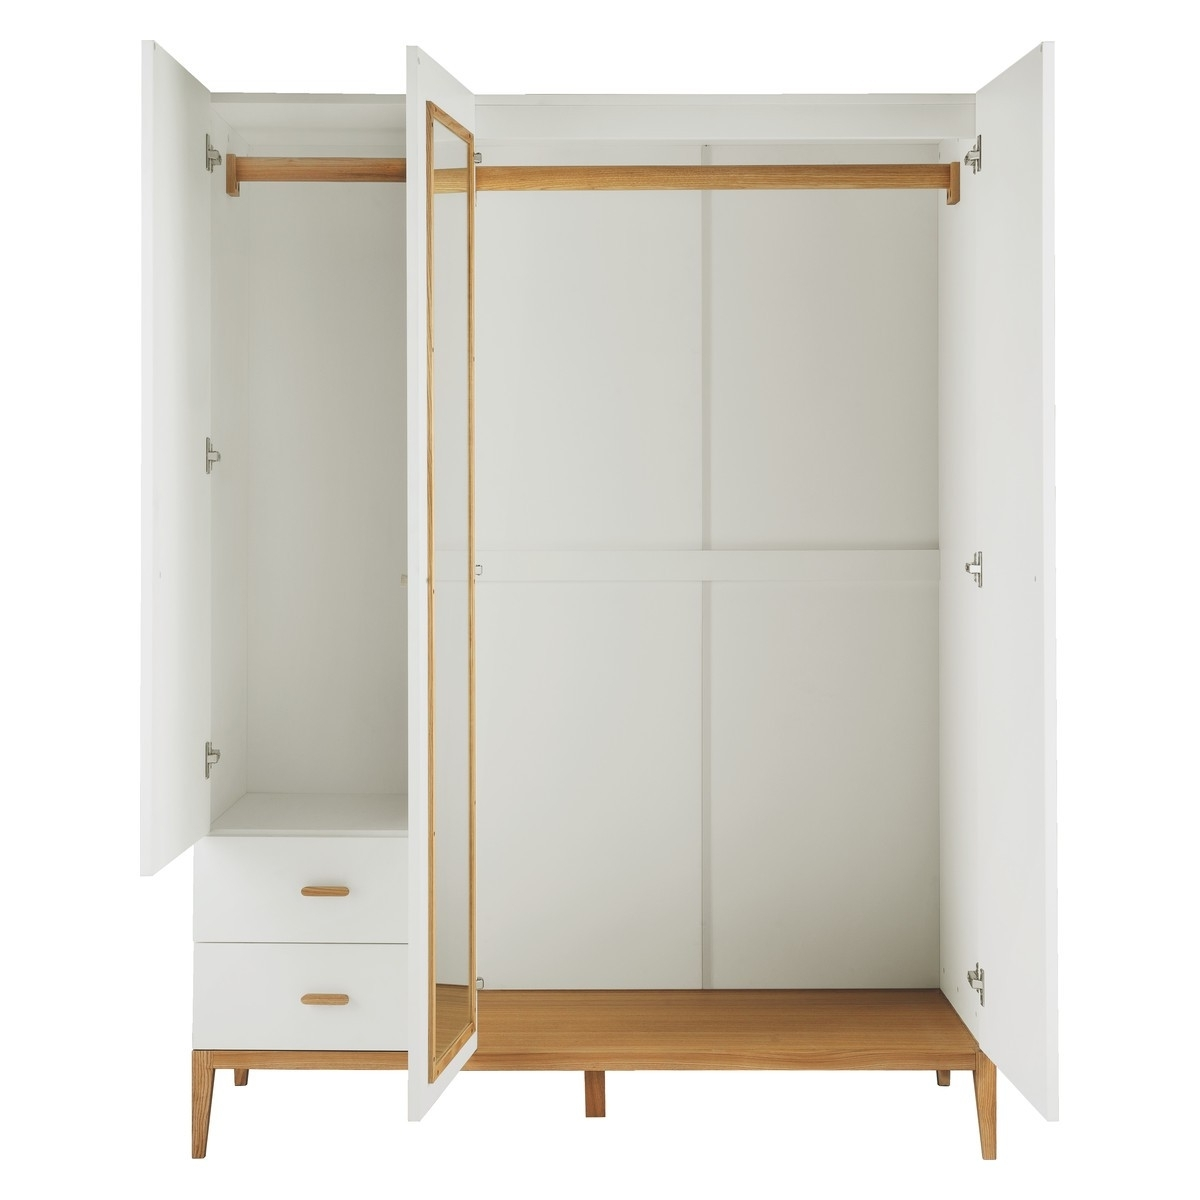 Buy Now At Habitat Uk Within 3 Doors Wardrobes With Mirror (View 7 of 15)